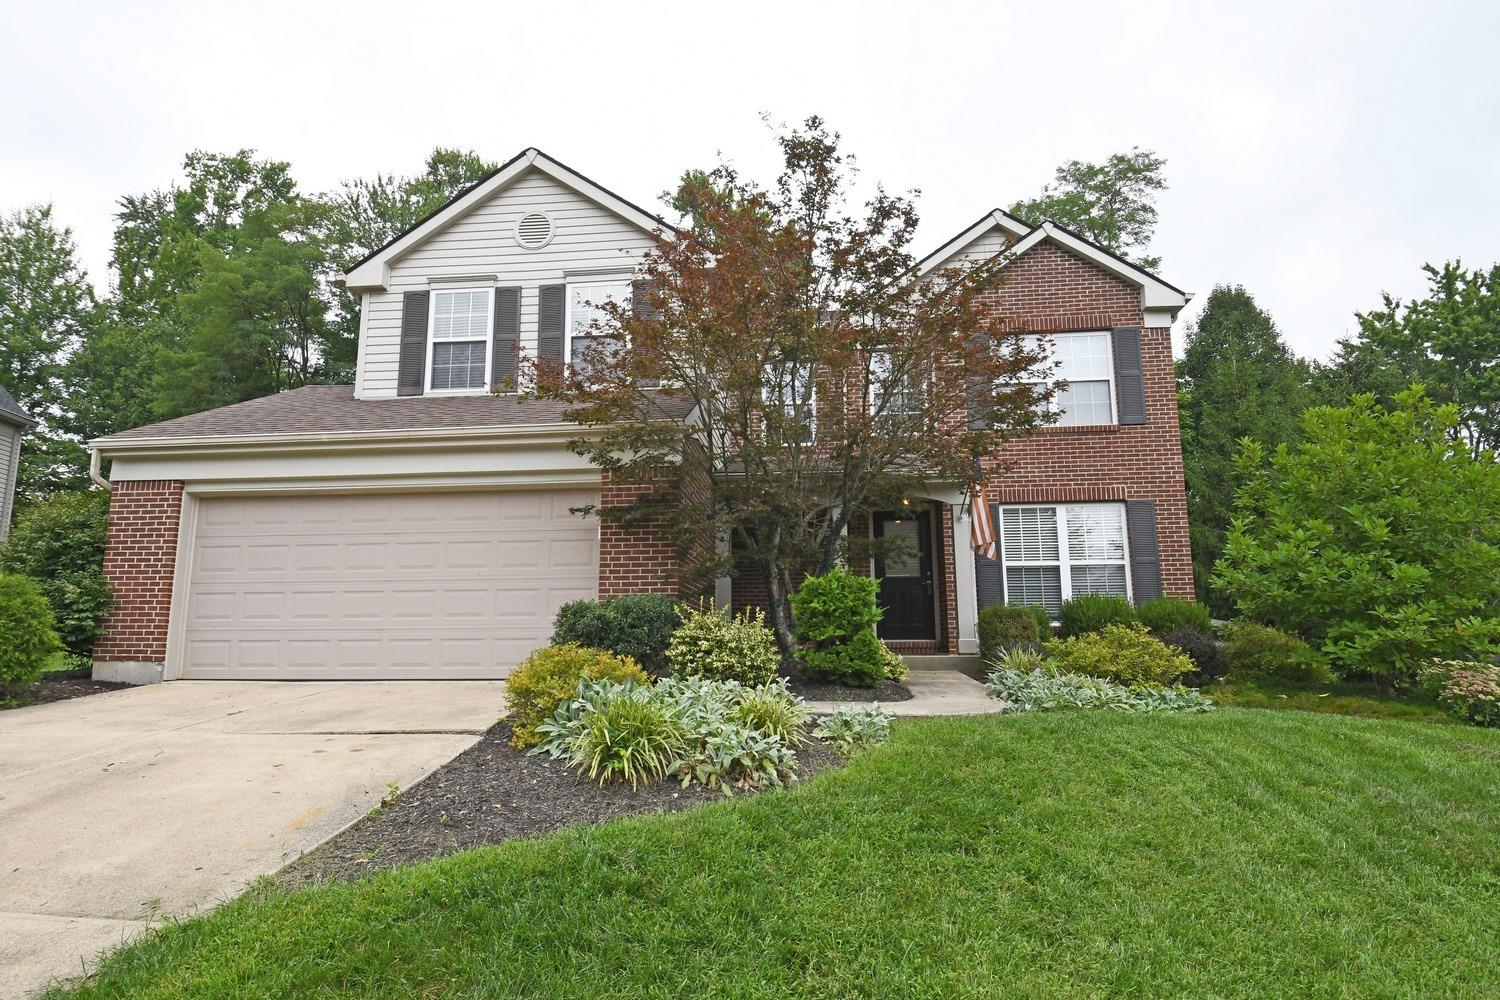 Property for sale at 7177 Welbeck Drive, Hamilton Twp,  Ohio 45039